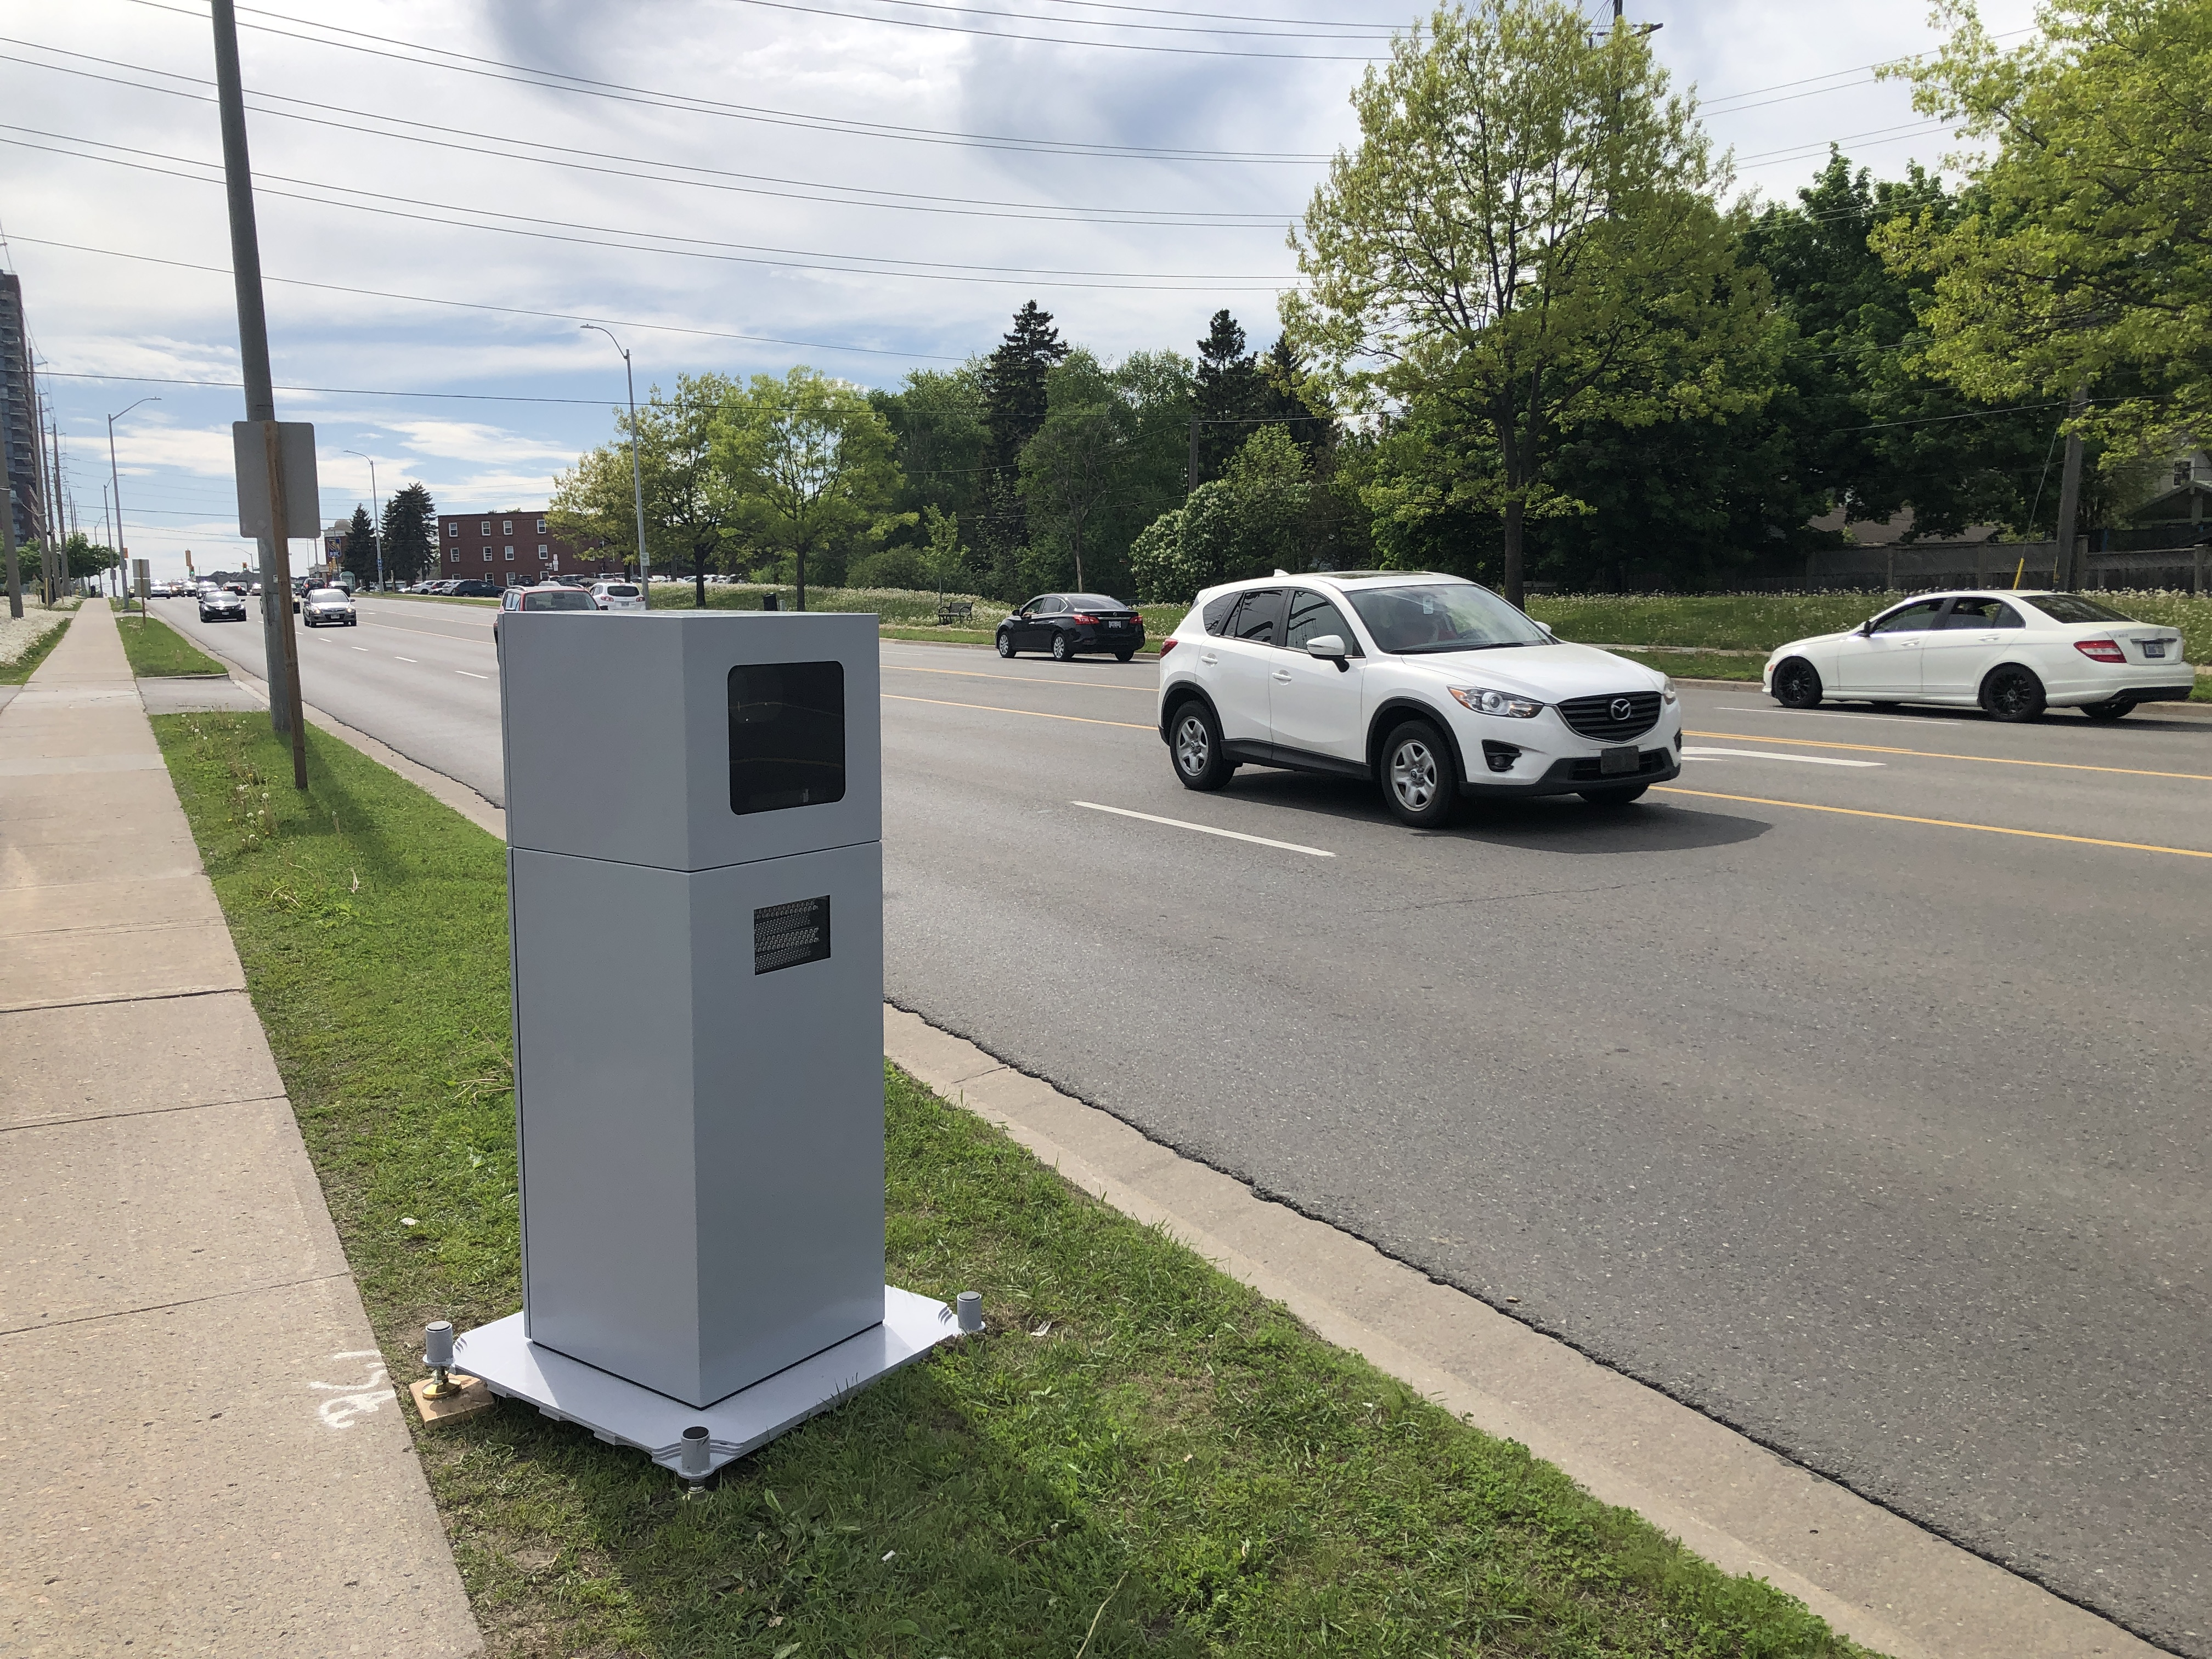 More than 1,800 speeders caught on camera in Brock